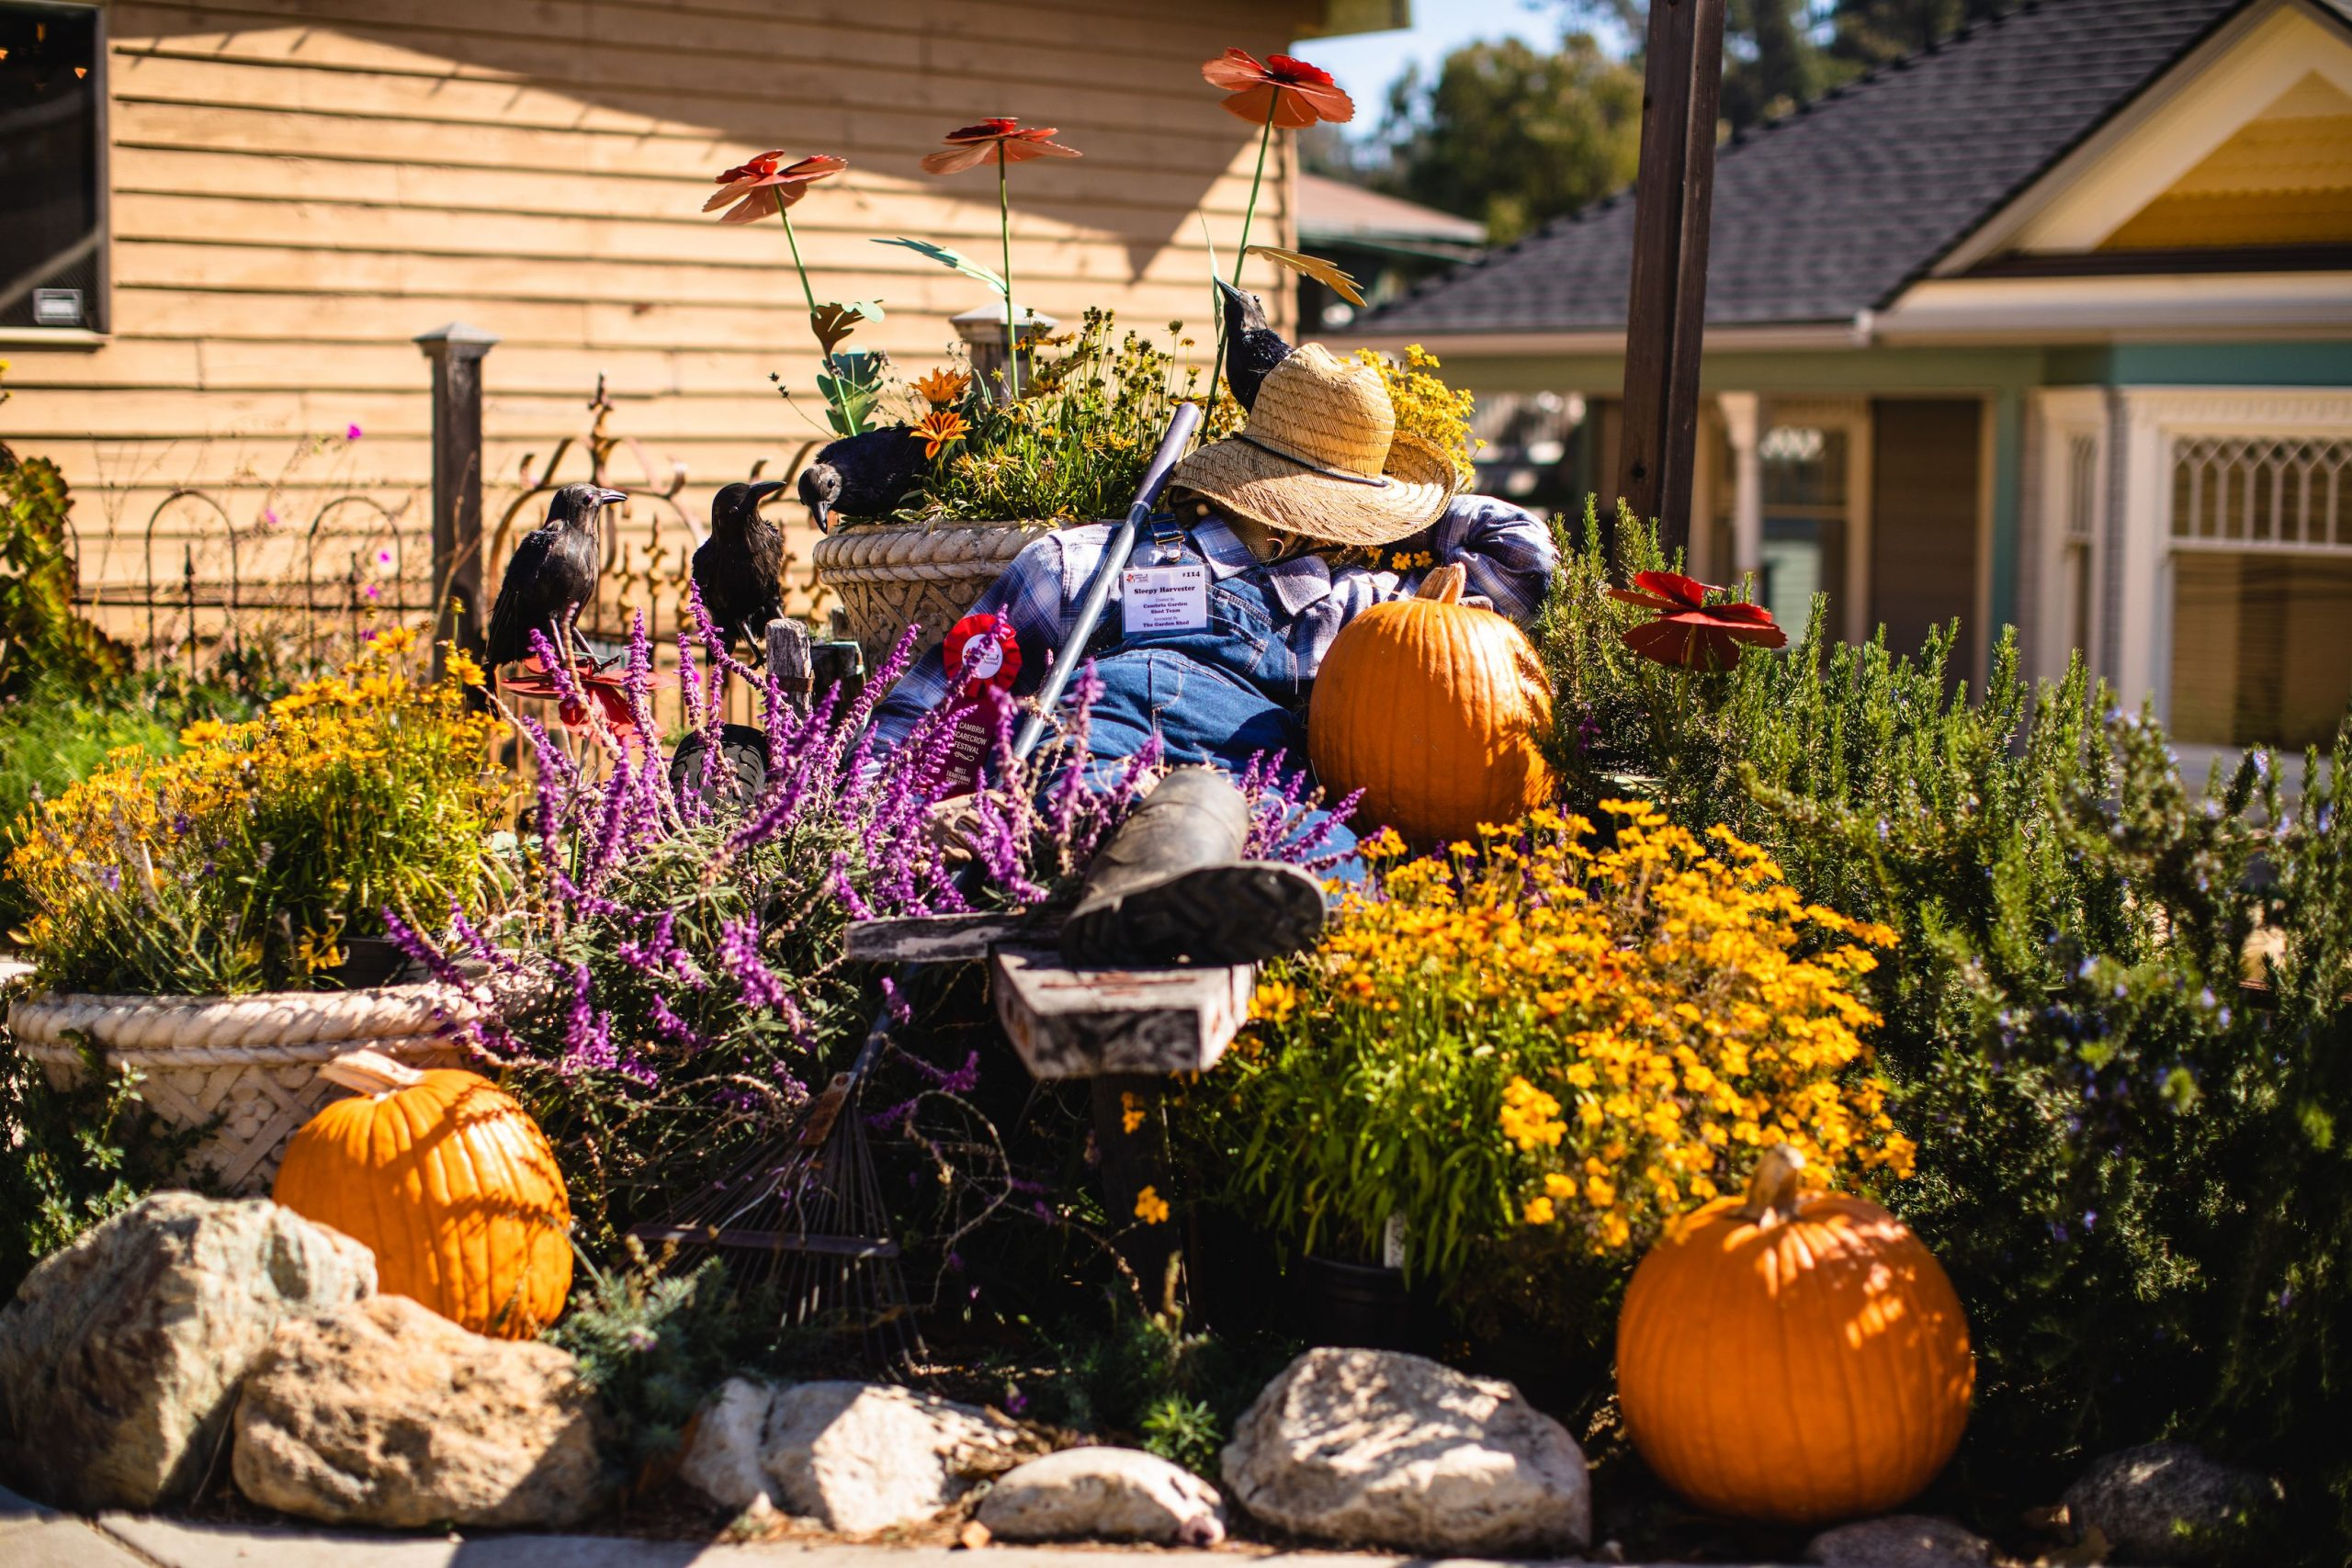 The Scarecrow Festival In The USA And Other Parts Of The World